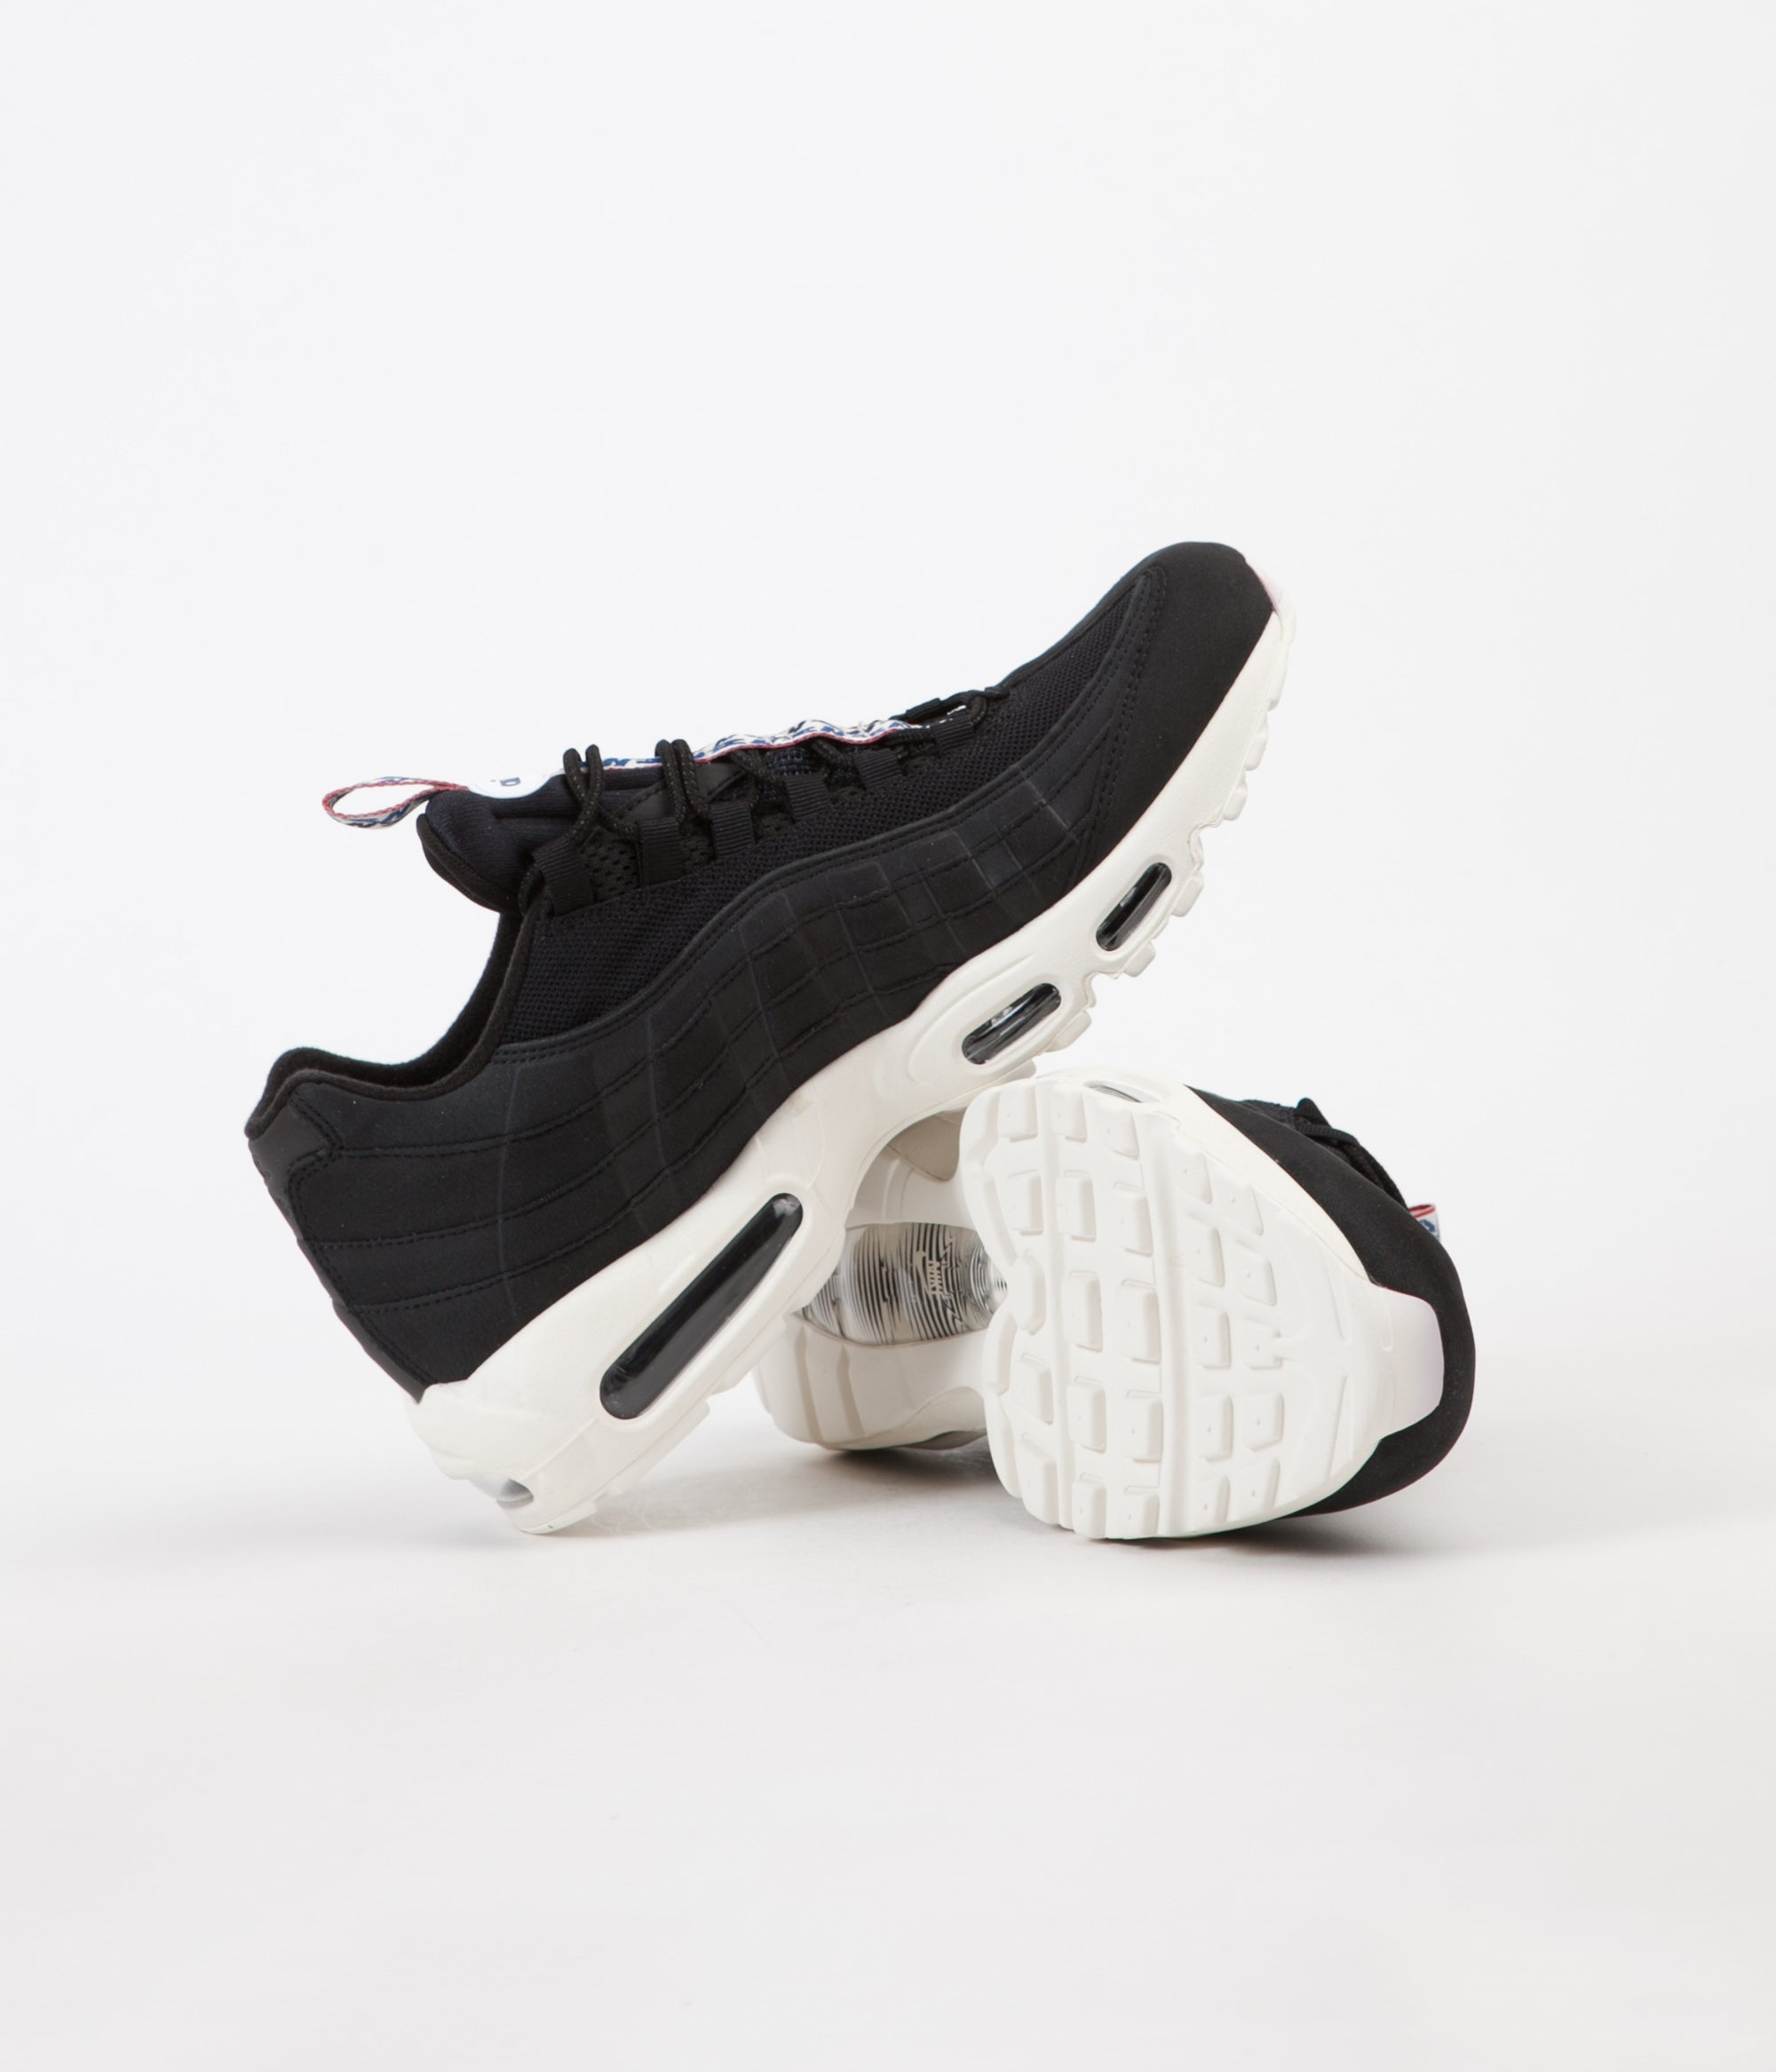 outlet store 2ec01 4343e Nike Air Max 95 TT Shoes - Black / Sail - Gym Red | Always ...